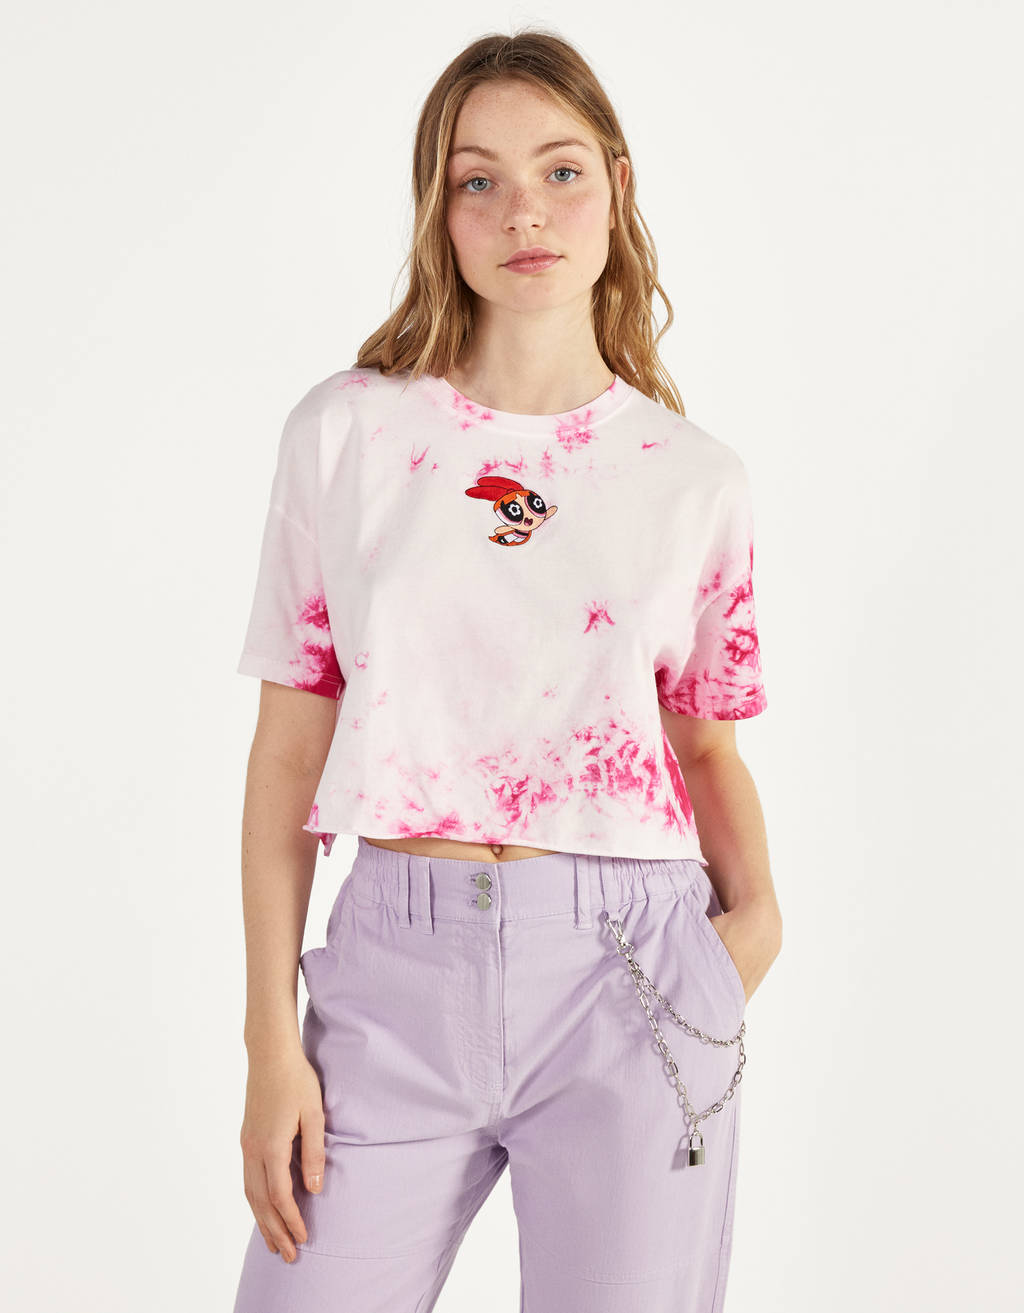 T-shirt com tie-dye As Powerpuff Girls x Bershka